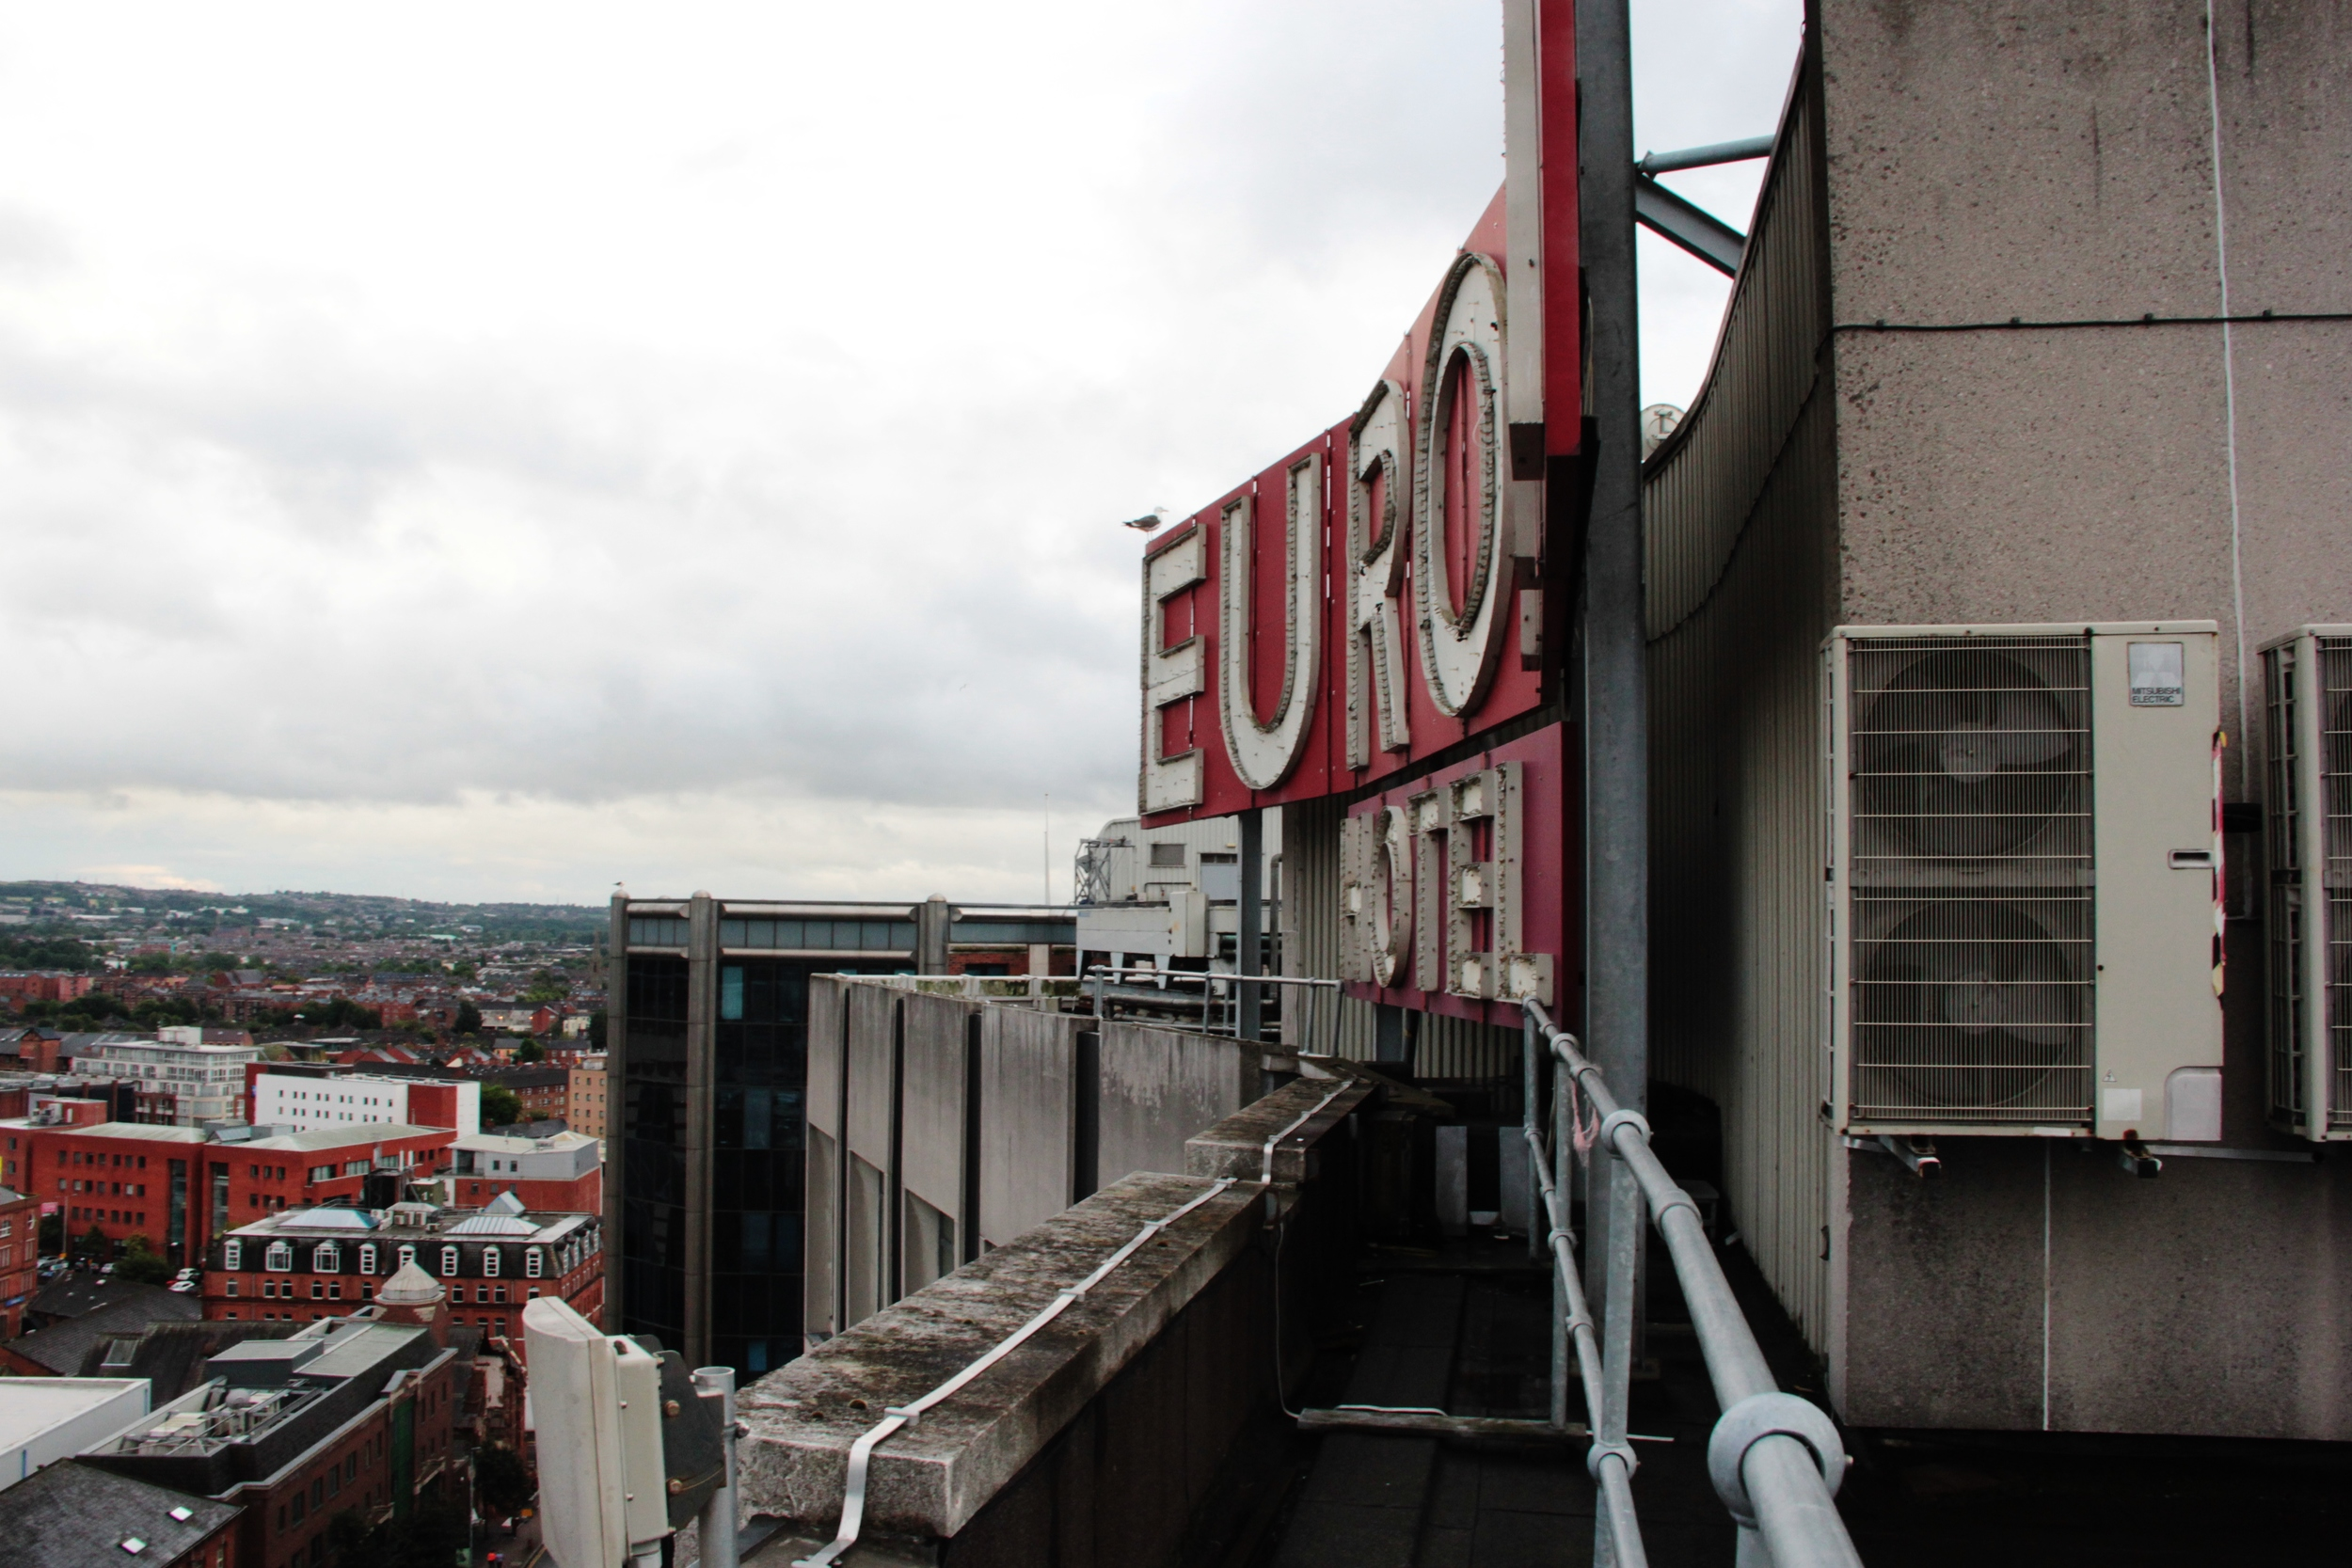 """""""Europa Hotel"""" sign without me in front...."""